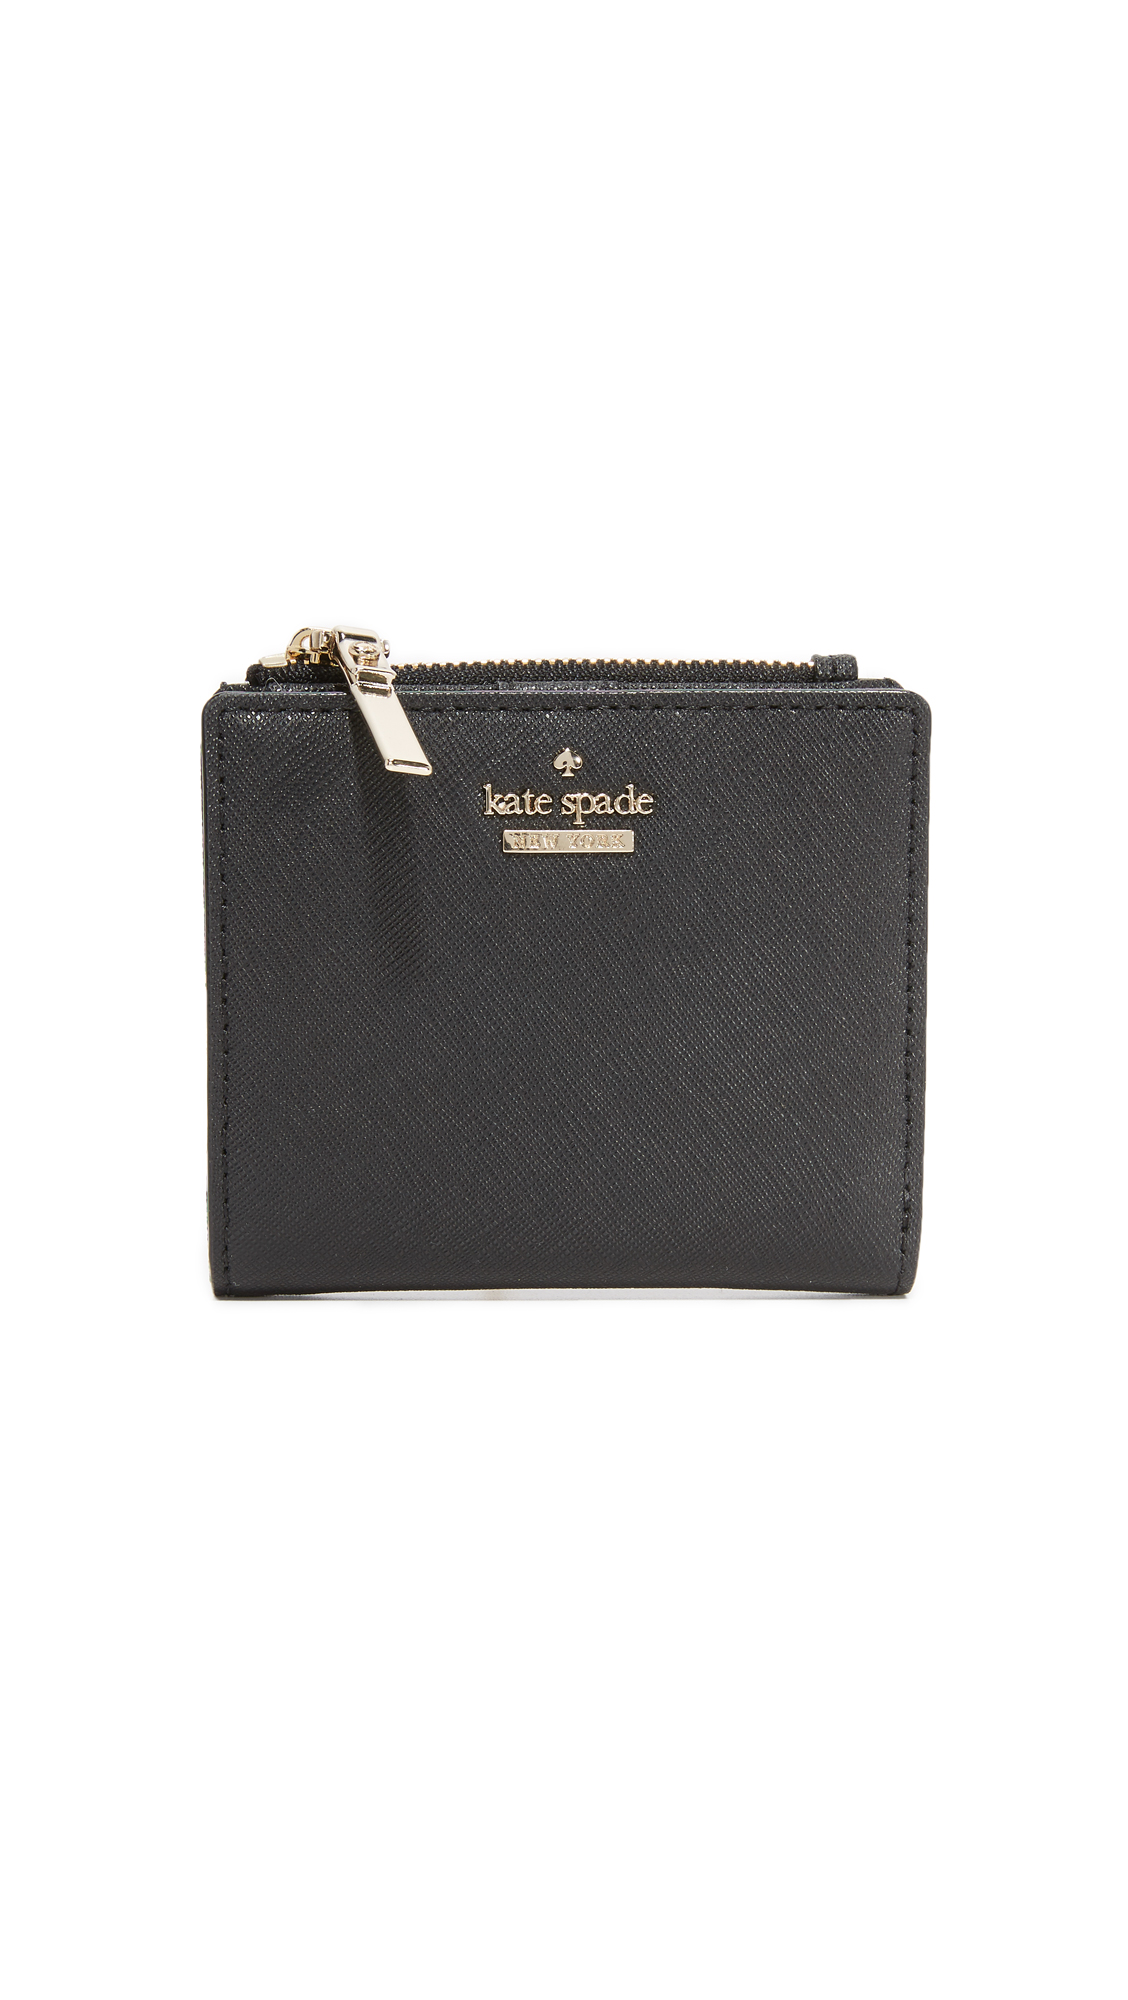 Kate Spade New York Cameron Street Adalyn Wallet - Black